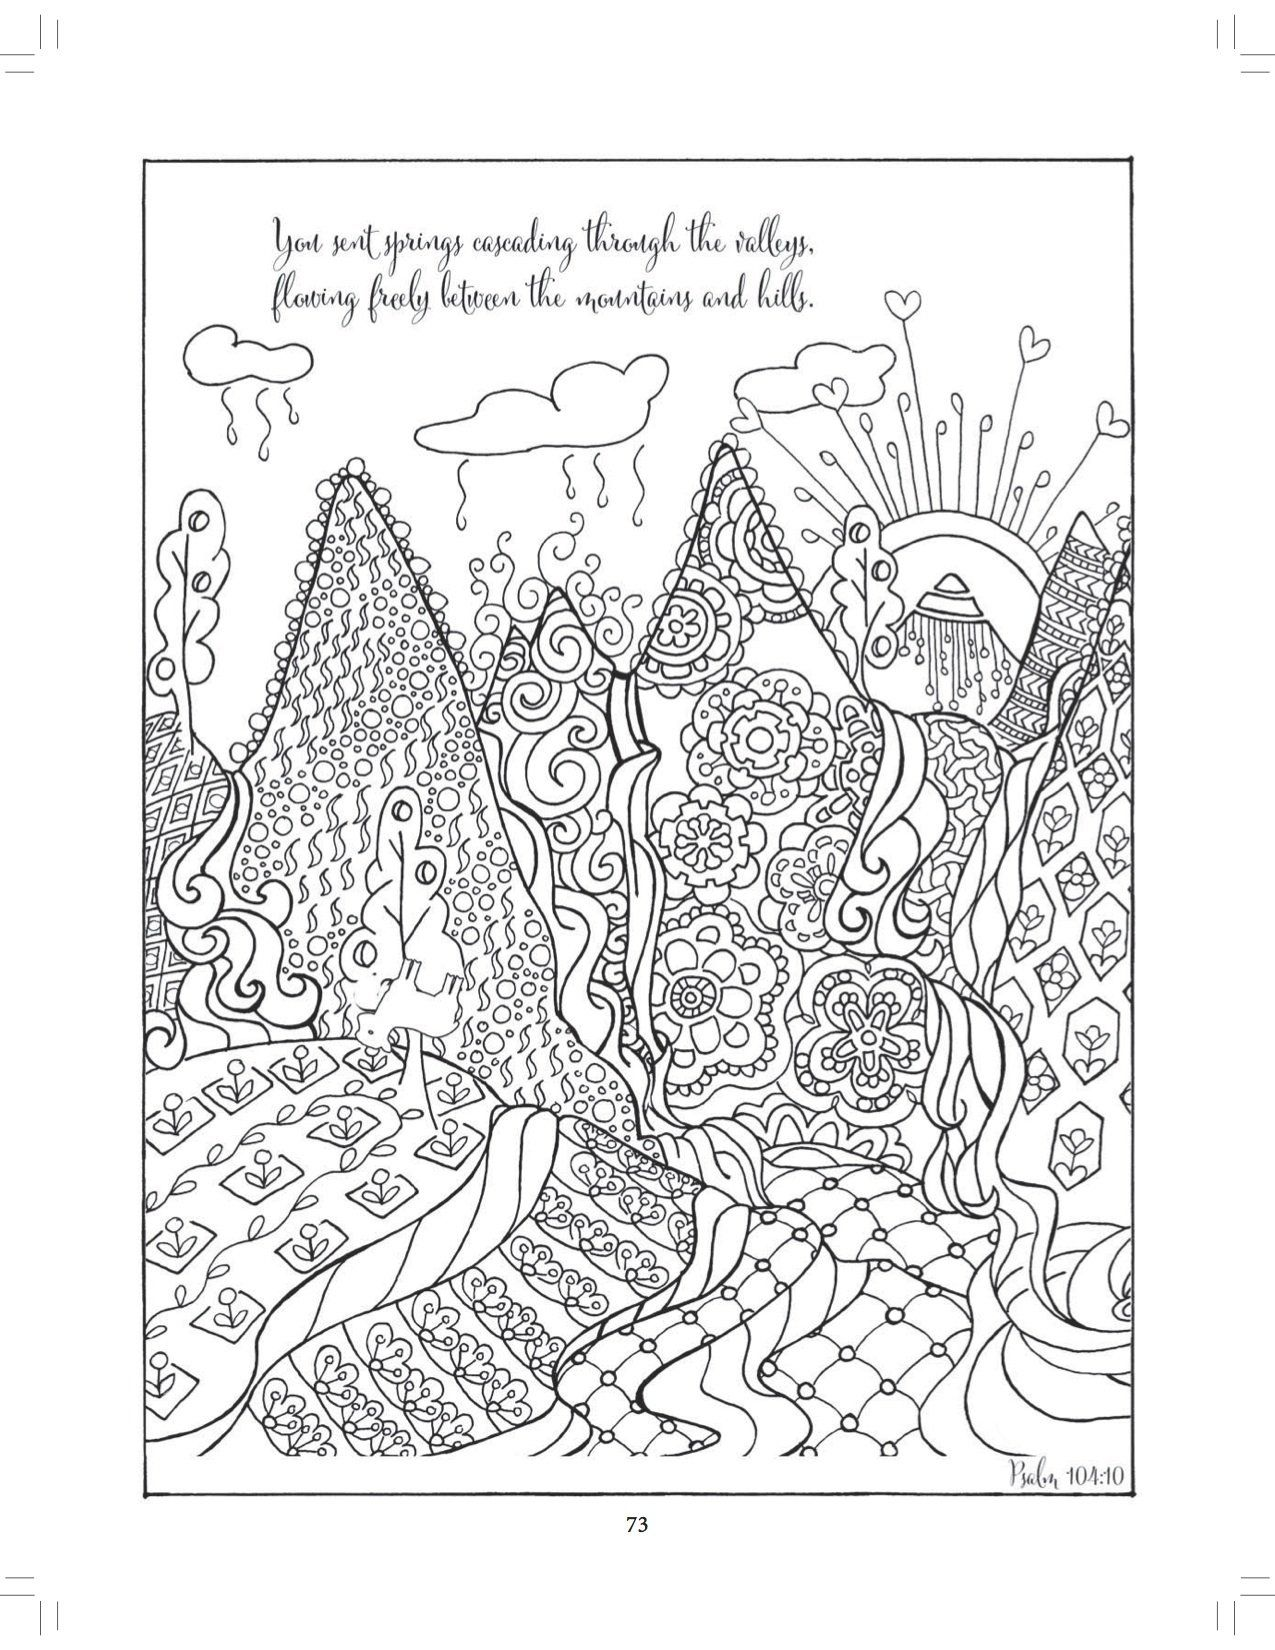 Coloring pages psalm 33 - Beside Still Waters Coloring The Psalms Adult Coloring Book Majestic Expressions 9781424551385